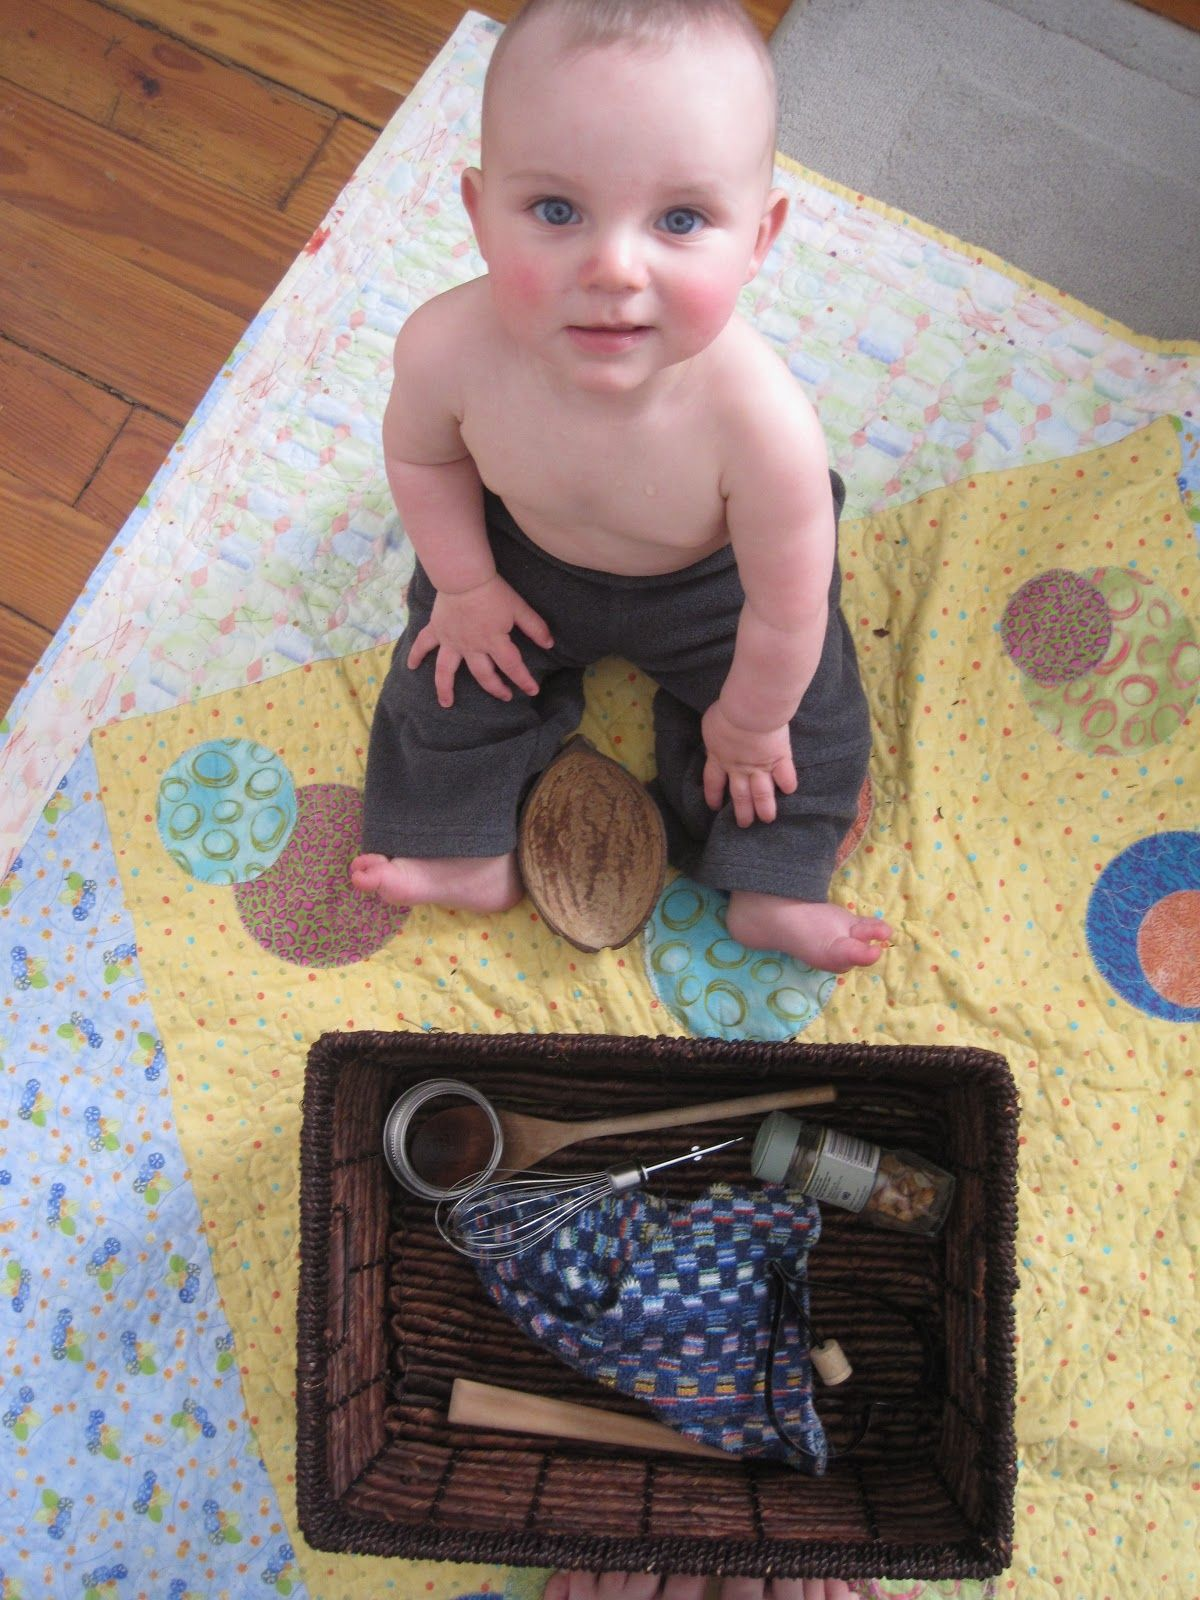 DIY Montessori-style Treasure Basket (for ages 6-18 months) from Making Home Simple